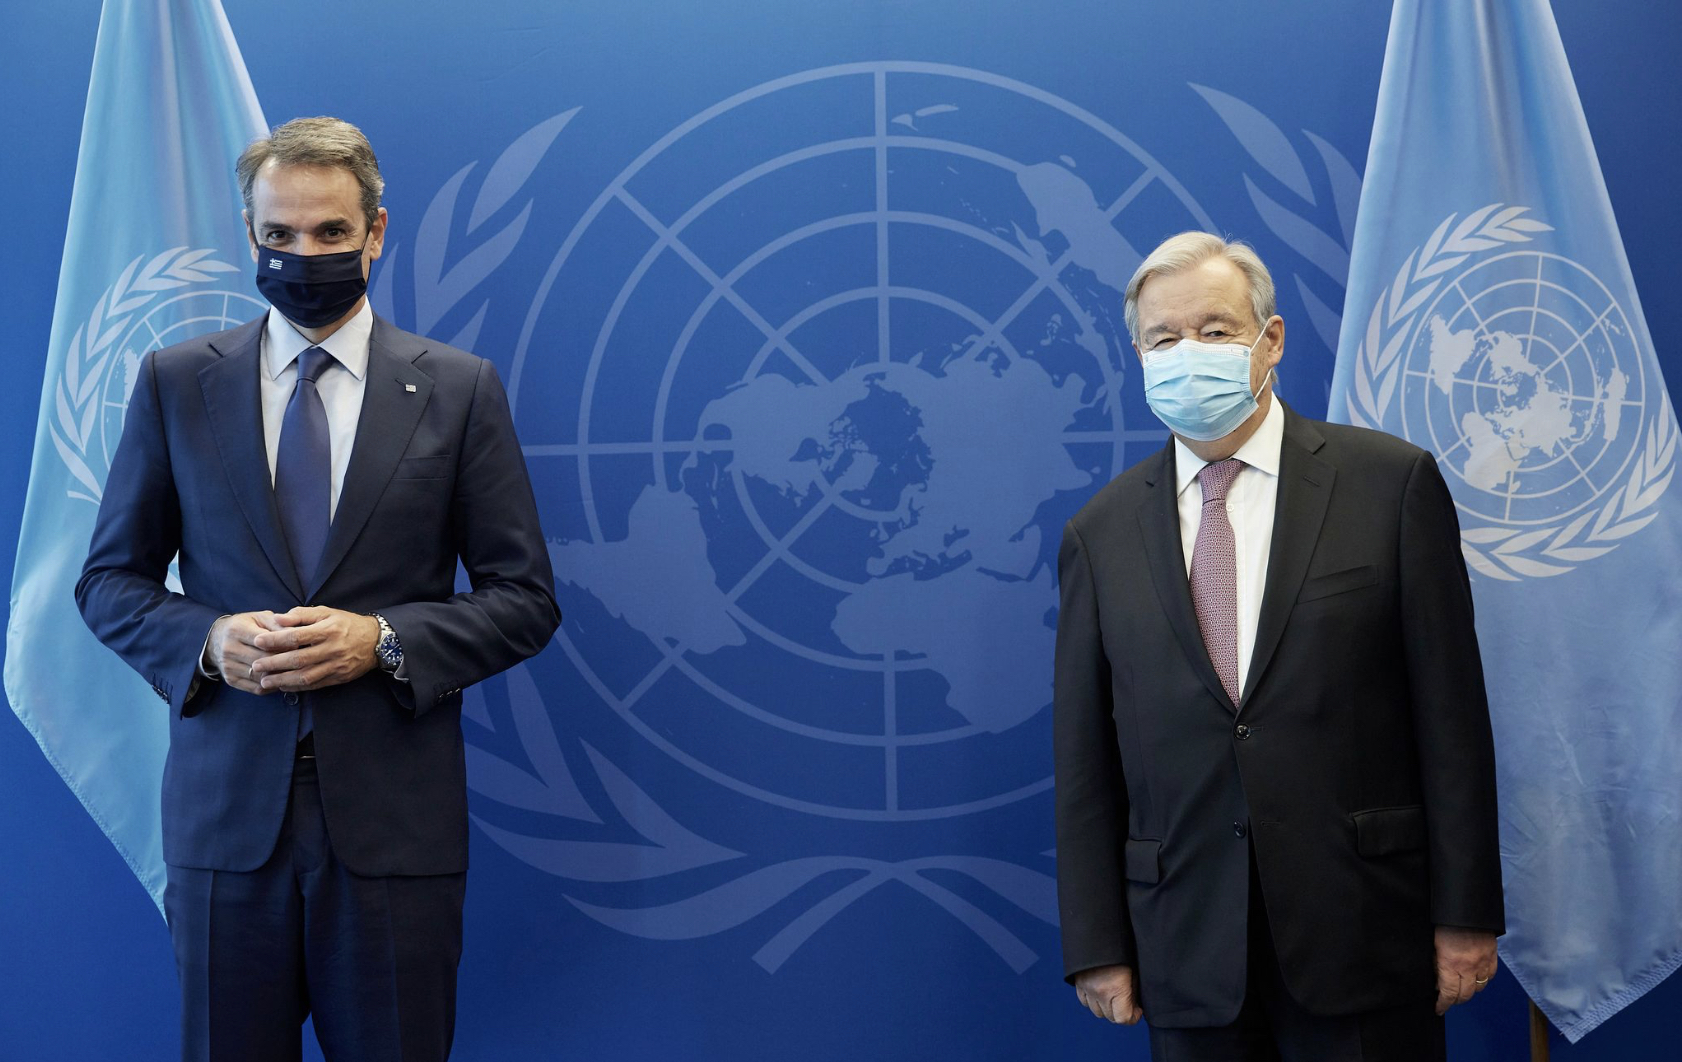 Greece: The Greek PM met with the UN Secretary General